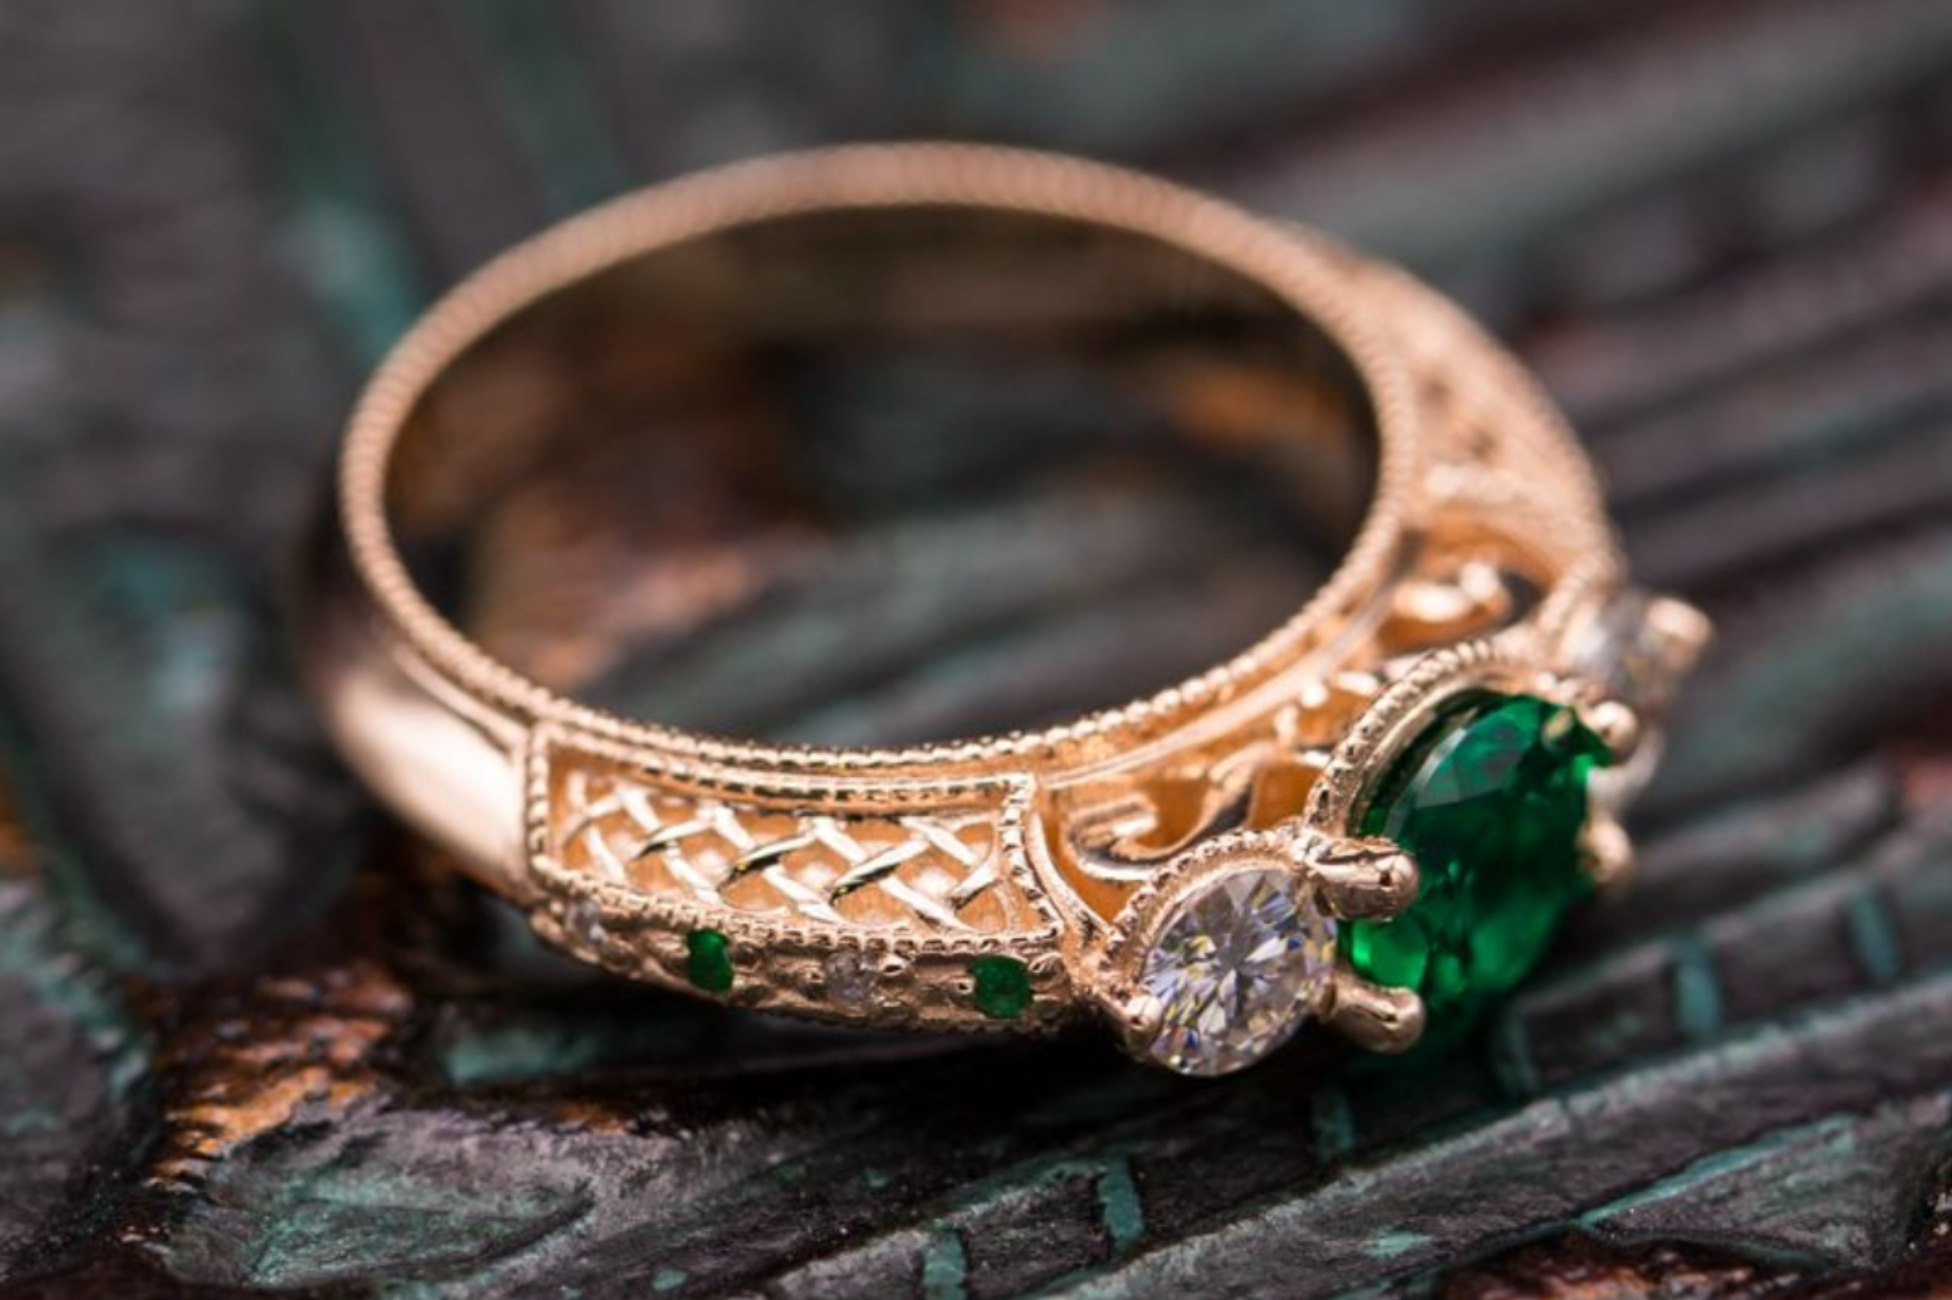 Vintage-inspired rose gold ring with three stone emerald and moissanite setting